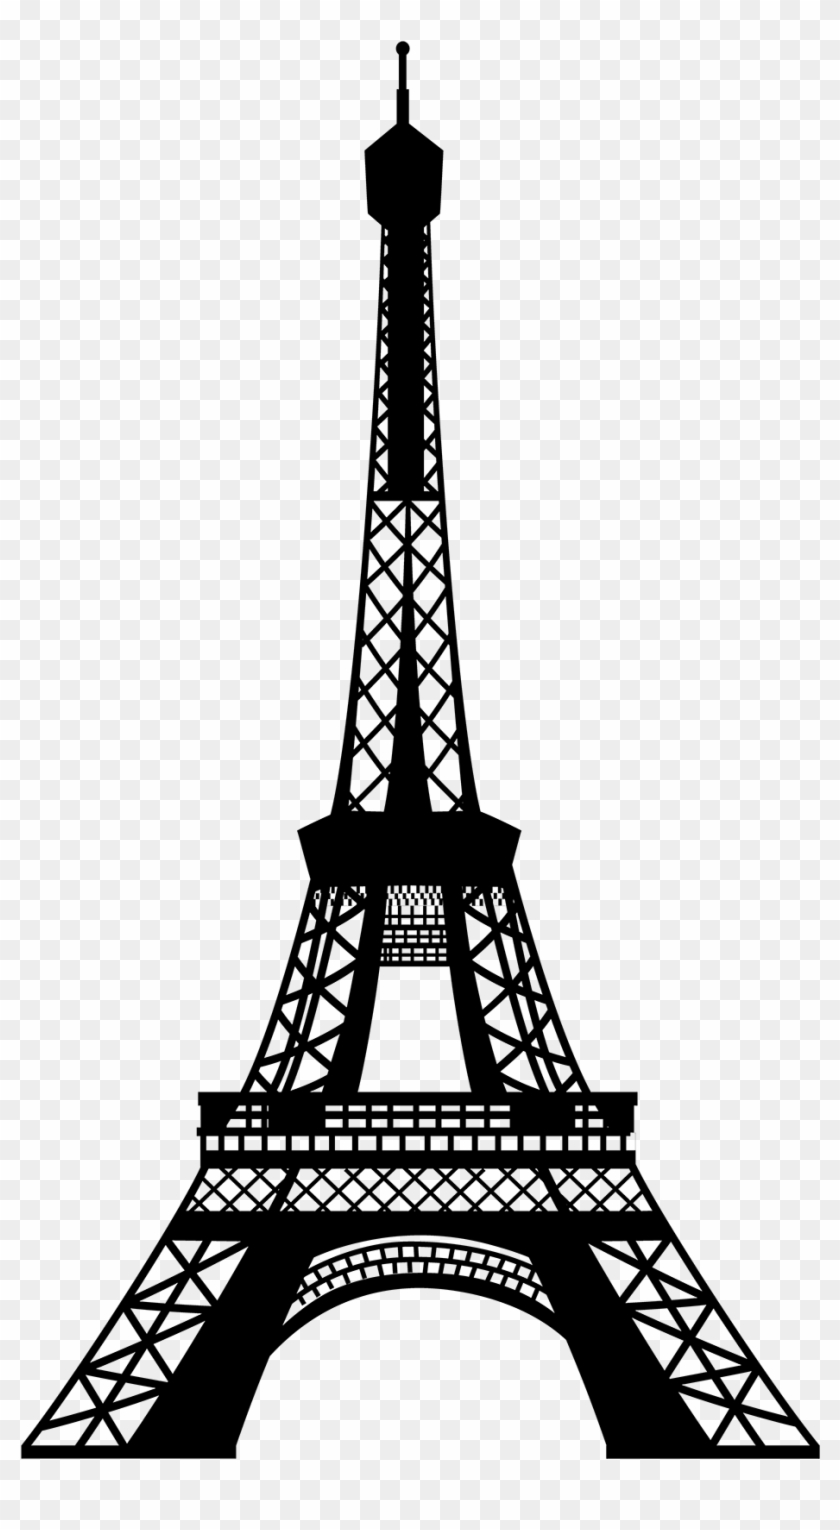 Eiffel Tower Silhouette Drawing Eiffel Tower Png Free